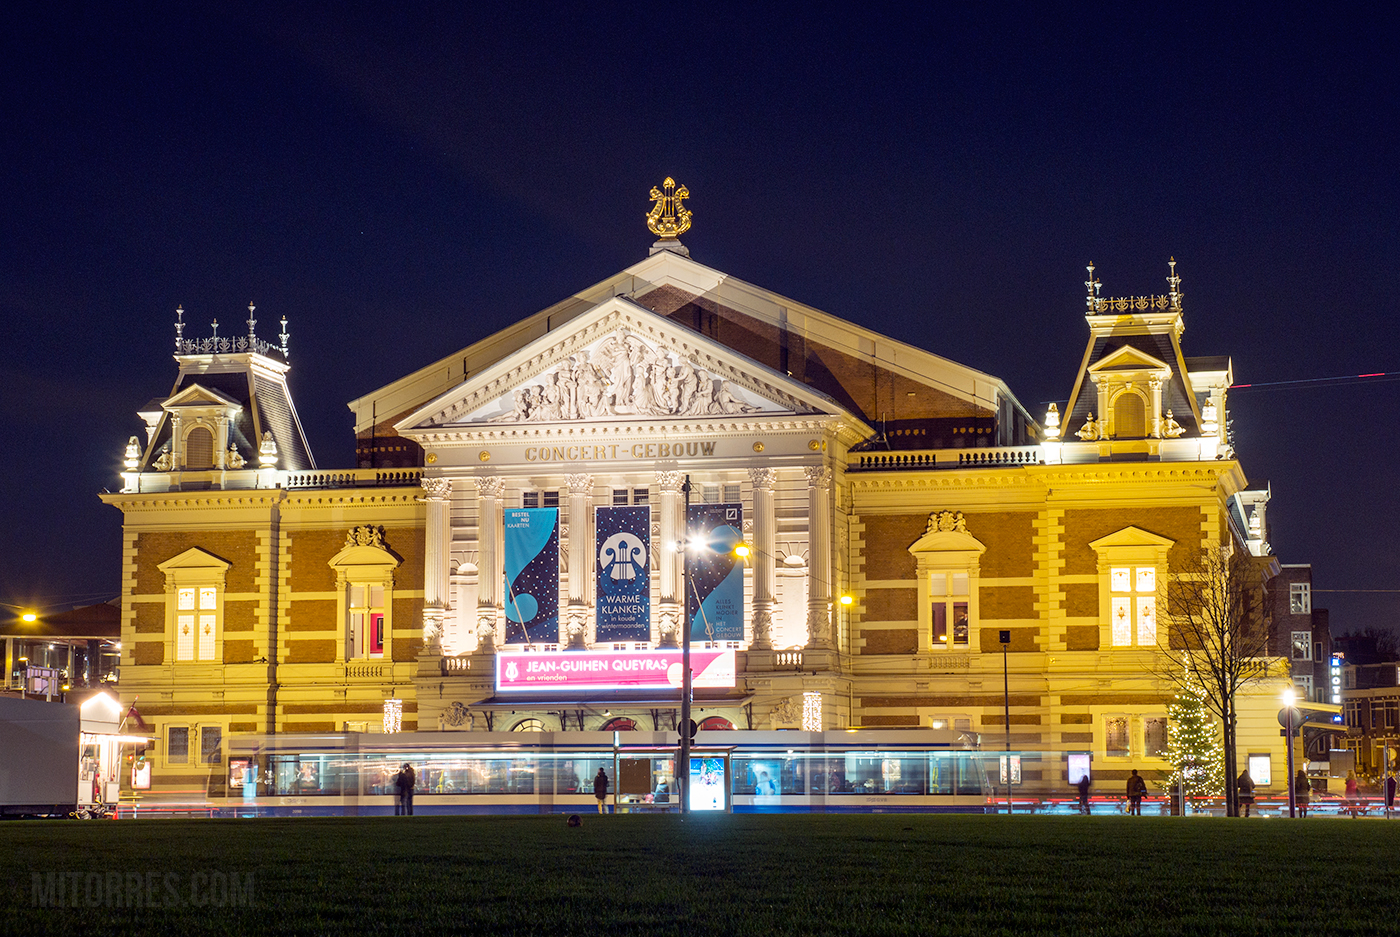 The Royal Concertgebouw concert hall in Amsterdam, Netherlands.